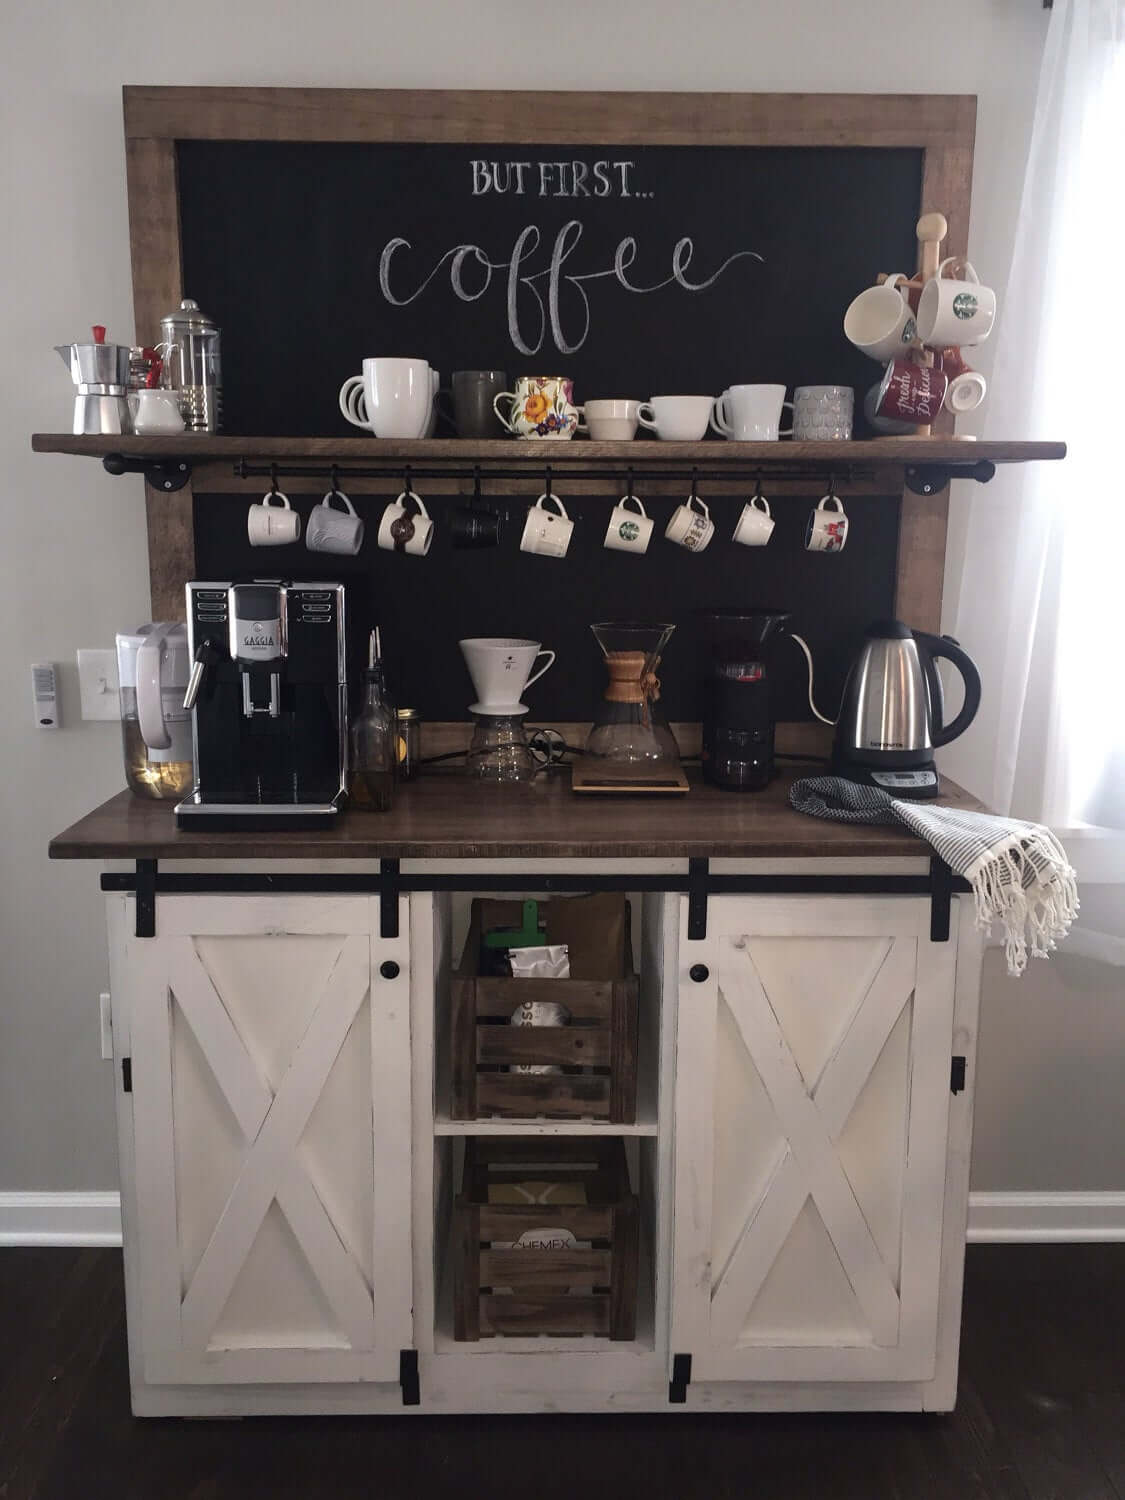 Farm House Blackboard Coffee Delight